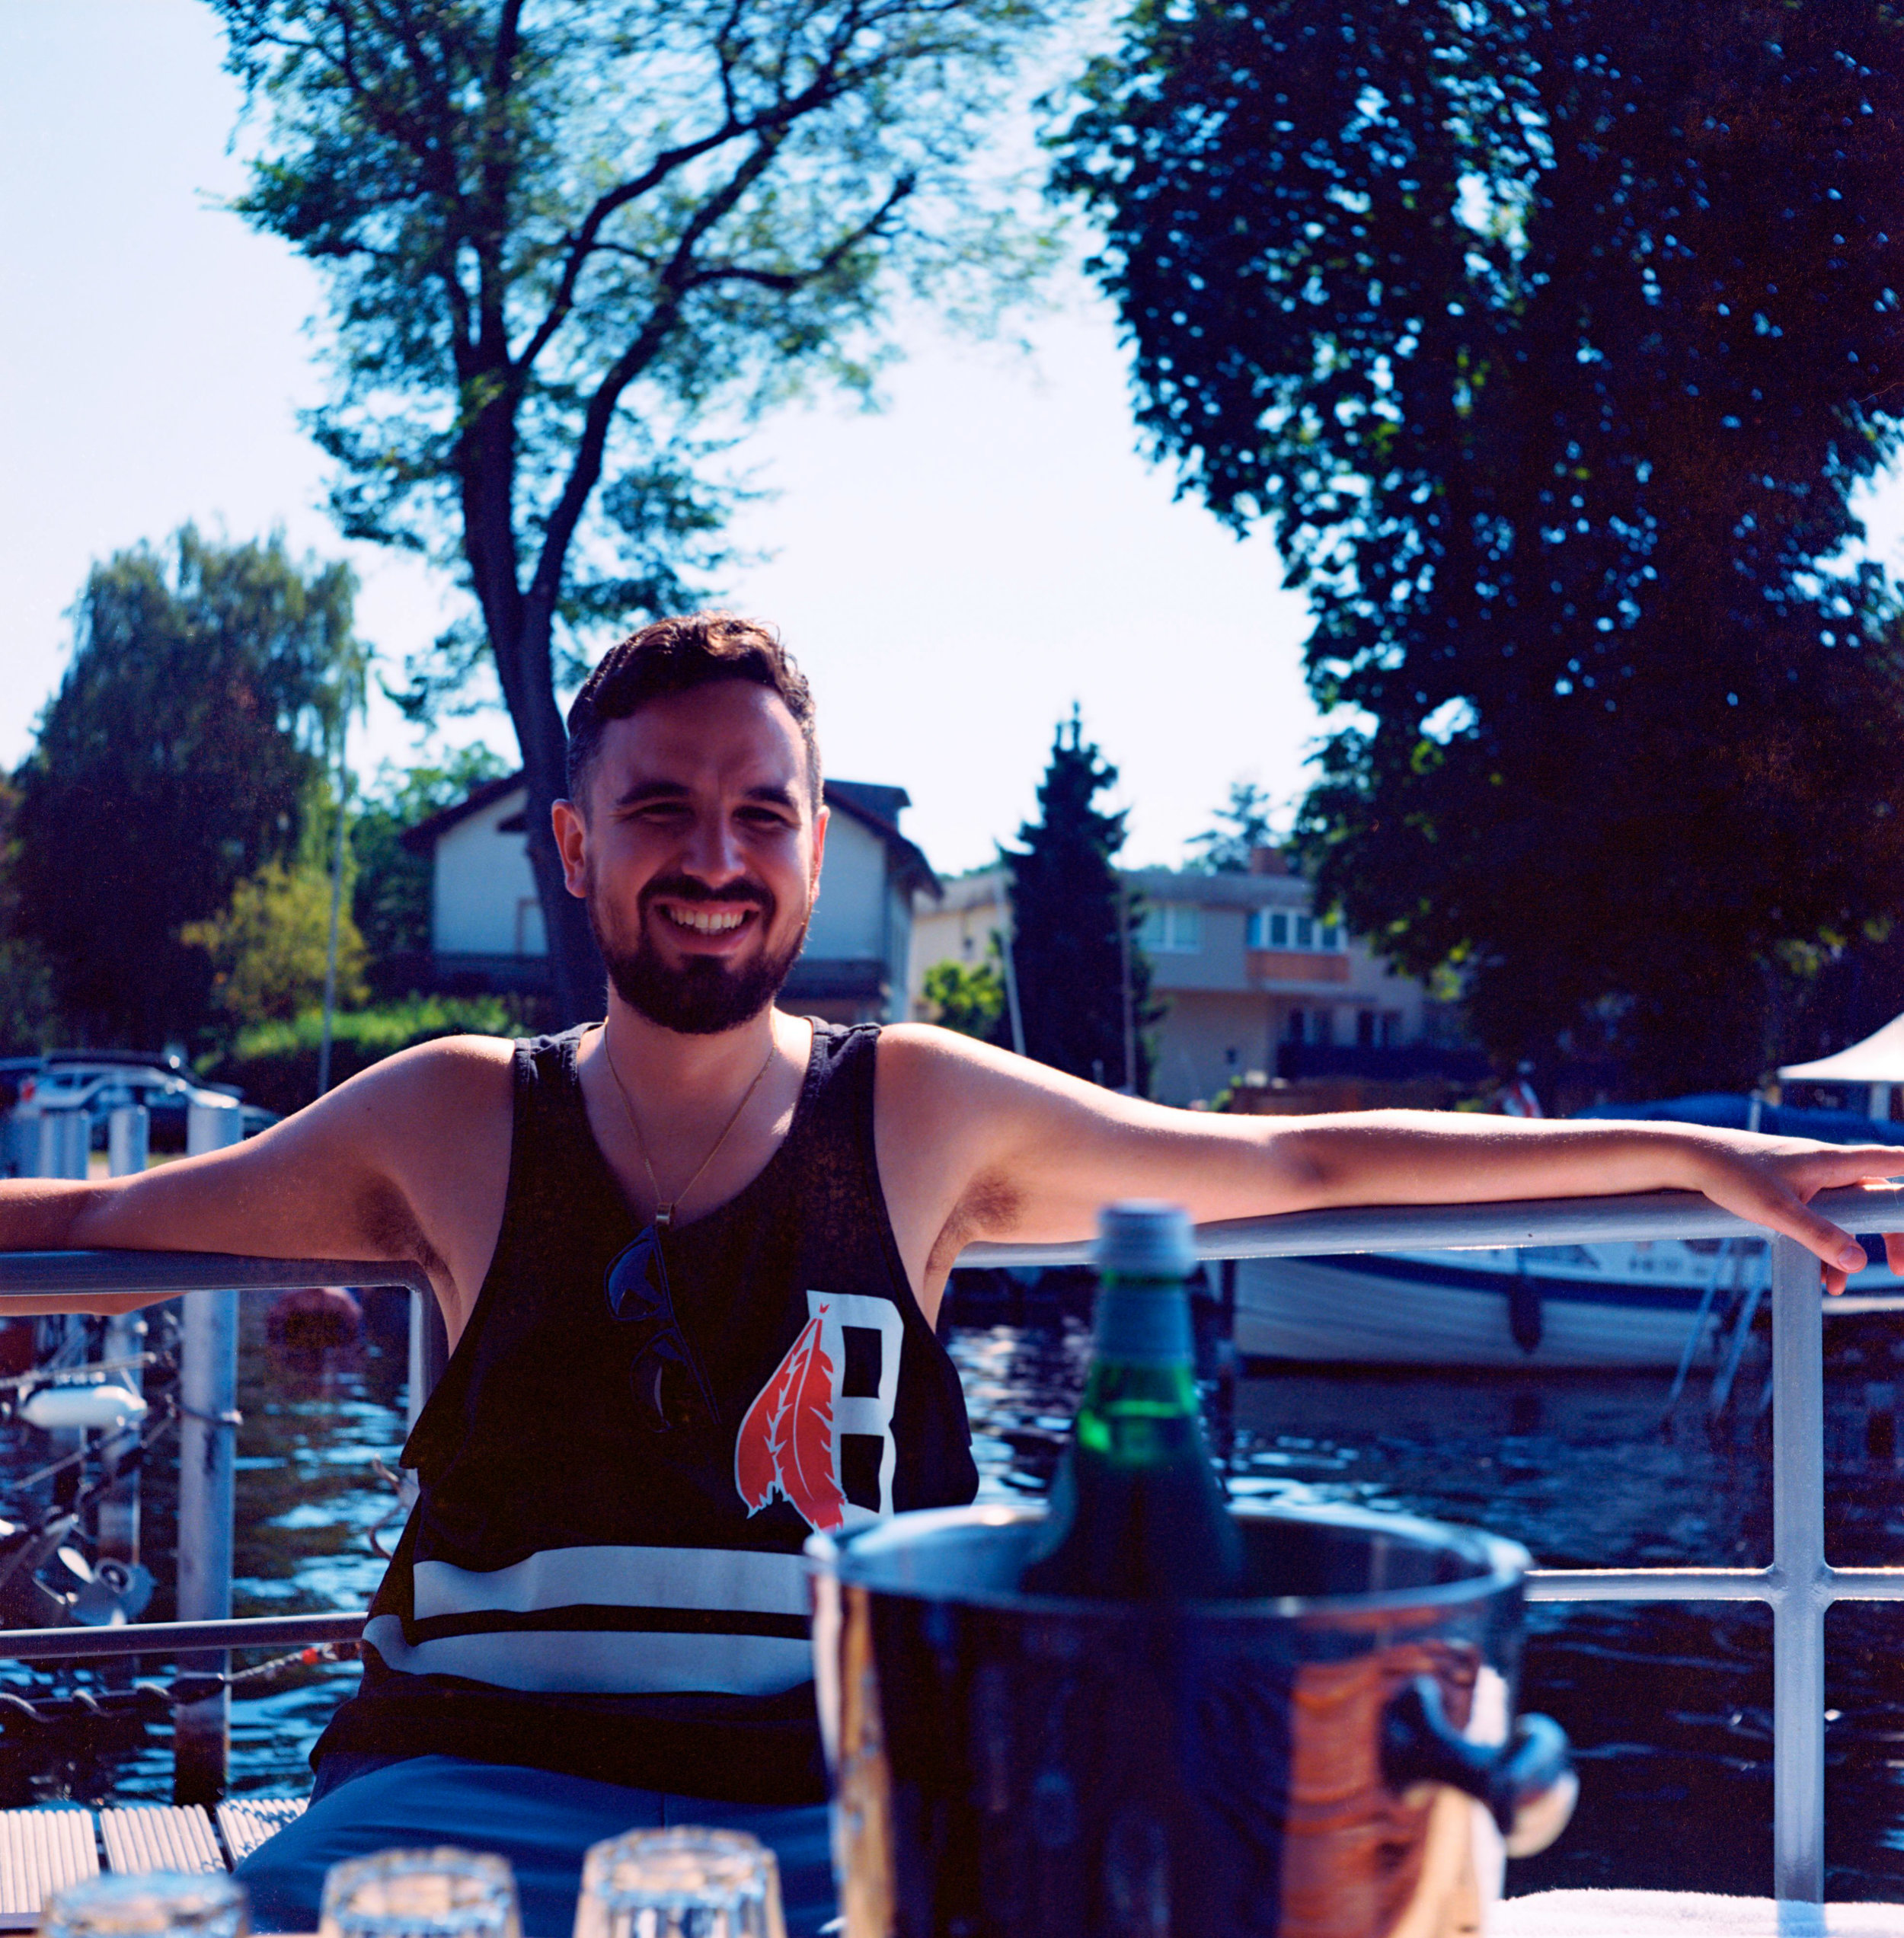 Blair enjoying boat life - Kodak Ektar 100.